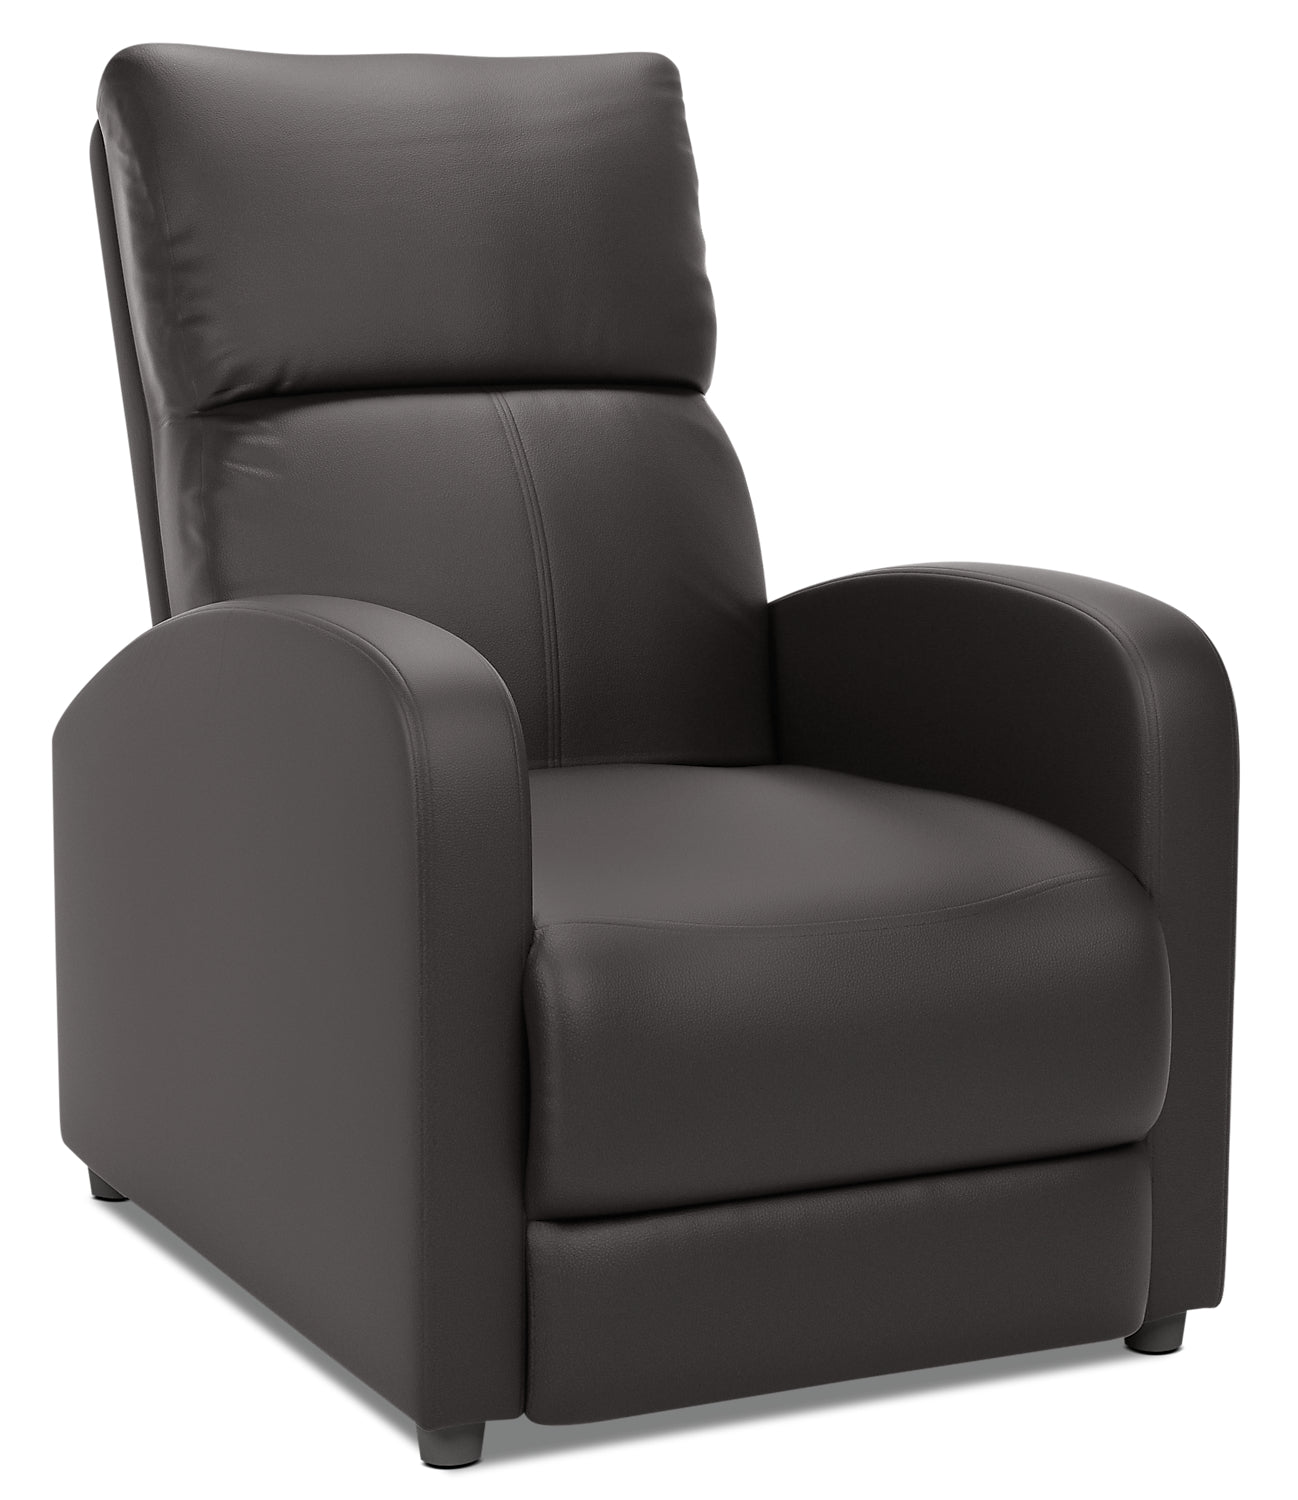 Surprising Zoe Bonded Leather Accent Reclining Chair With Rounded Arms Black Pdpeps Interior Chair Design Pdpepsorg